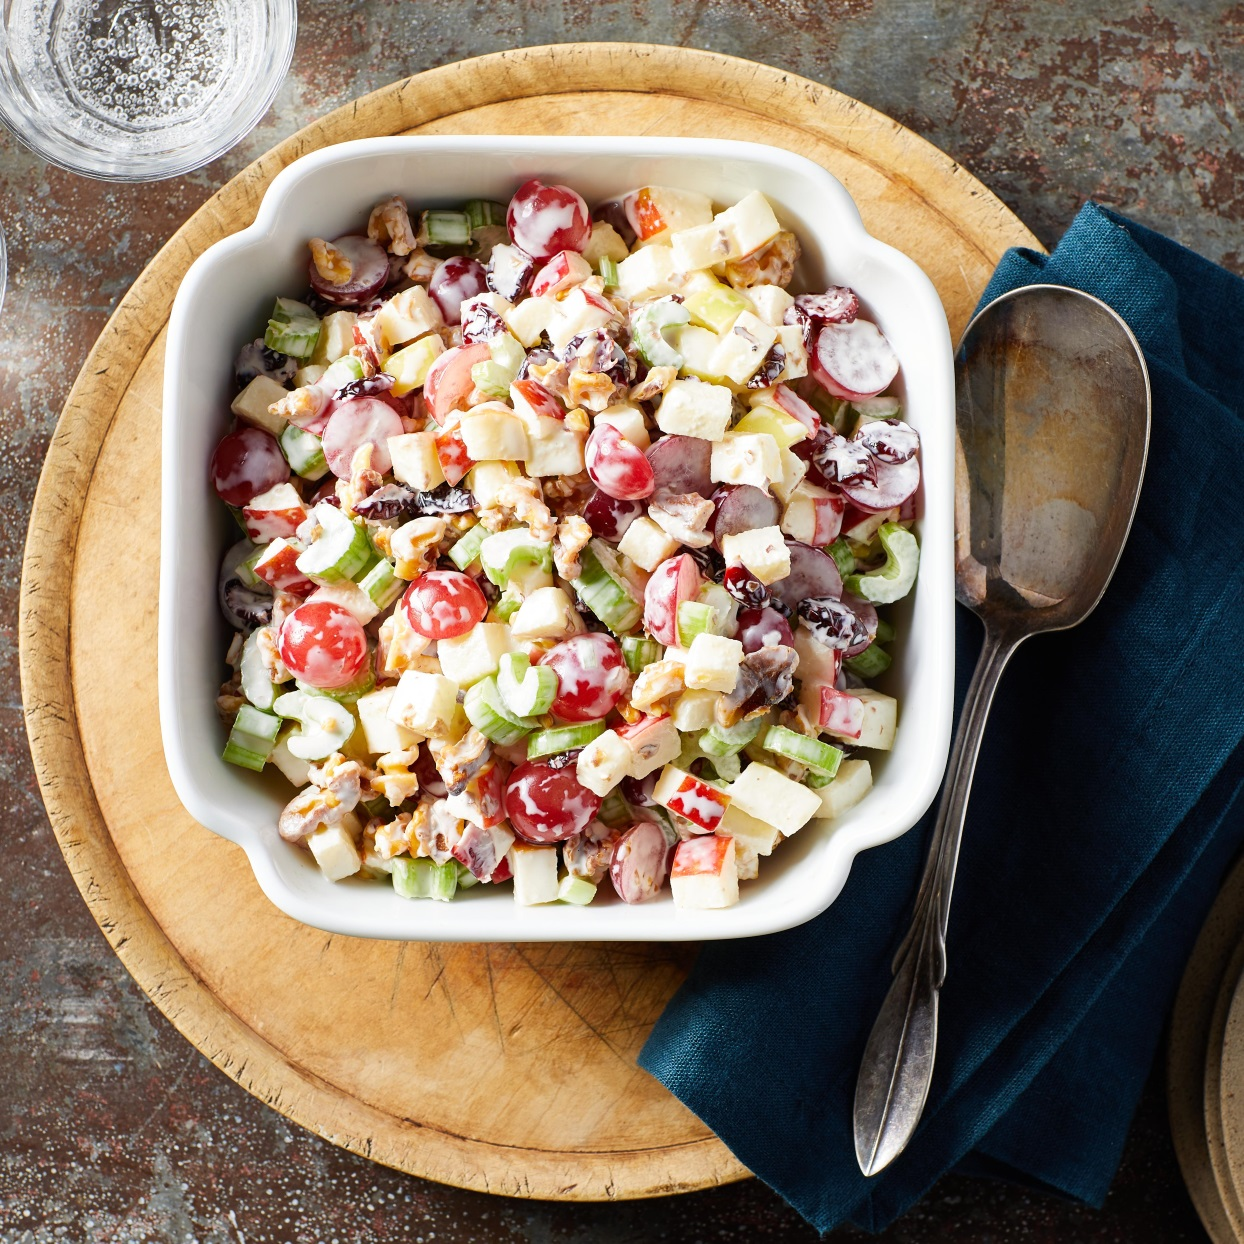 We've dressed the classic Waldorf salad up for Christmas by swapping out the raisins for festive dried cranberries. A combination of Greek yogurt and mayonnaise makes the salad creamy while keeping it light.